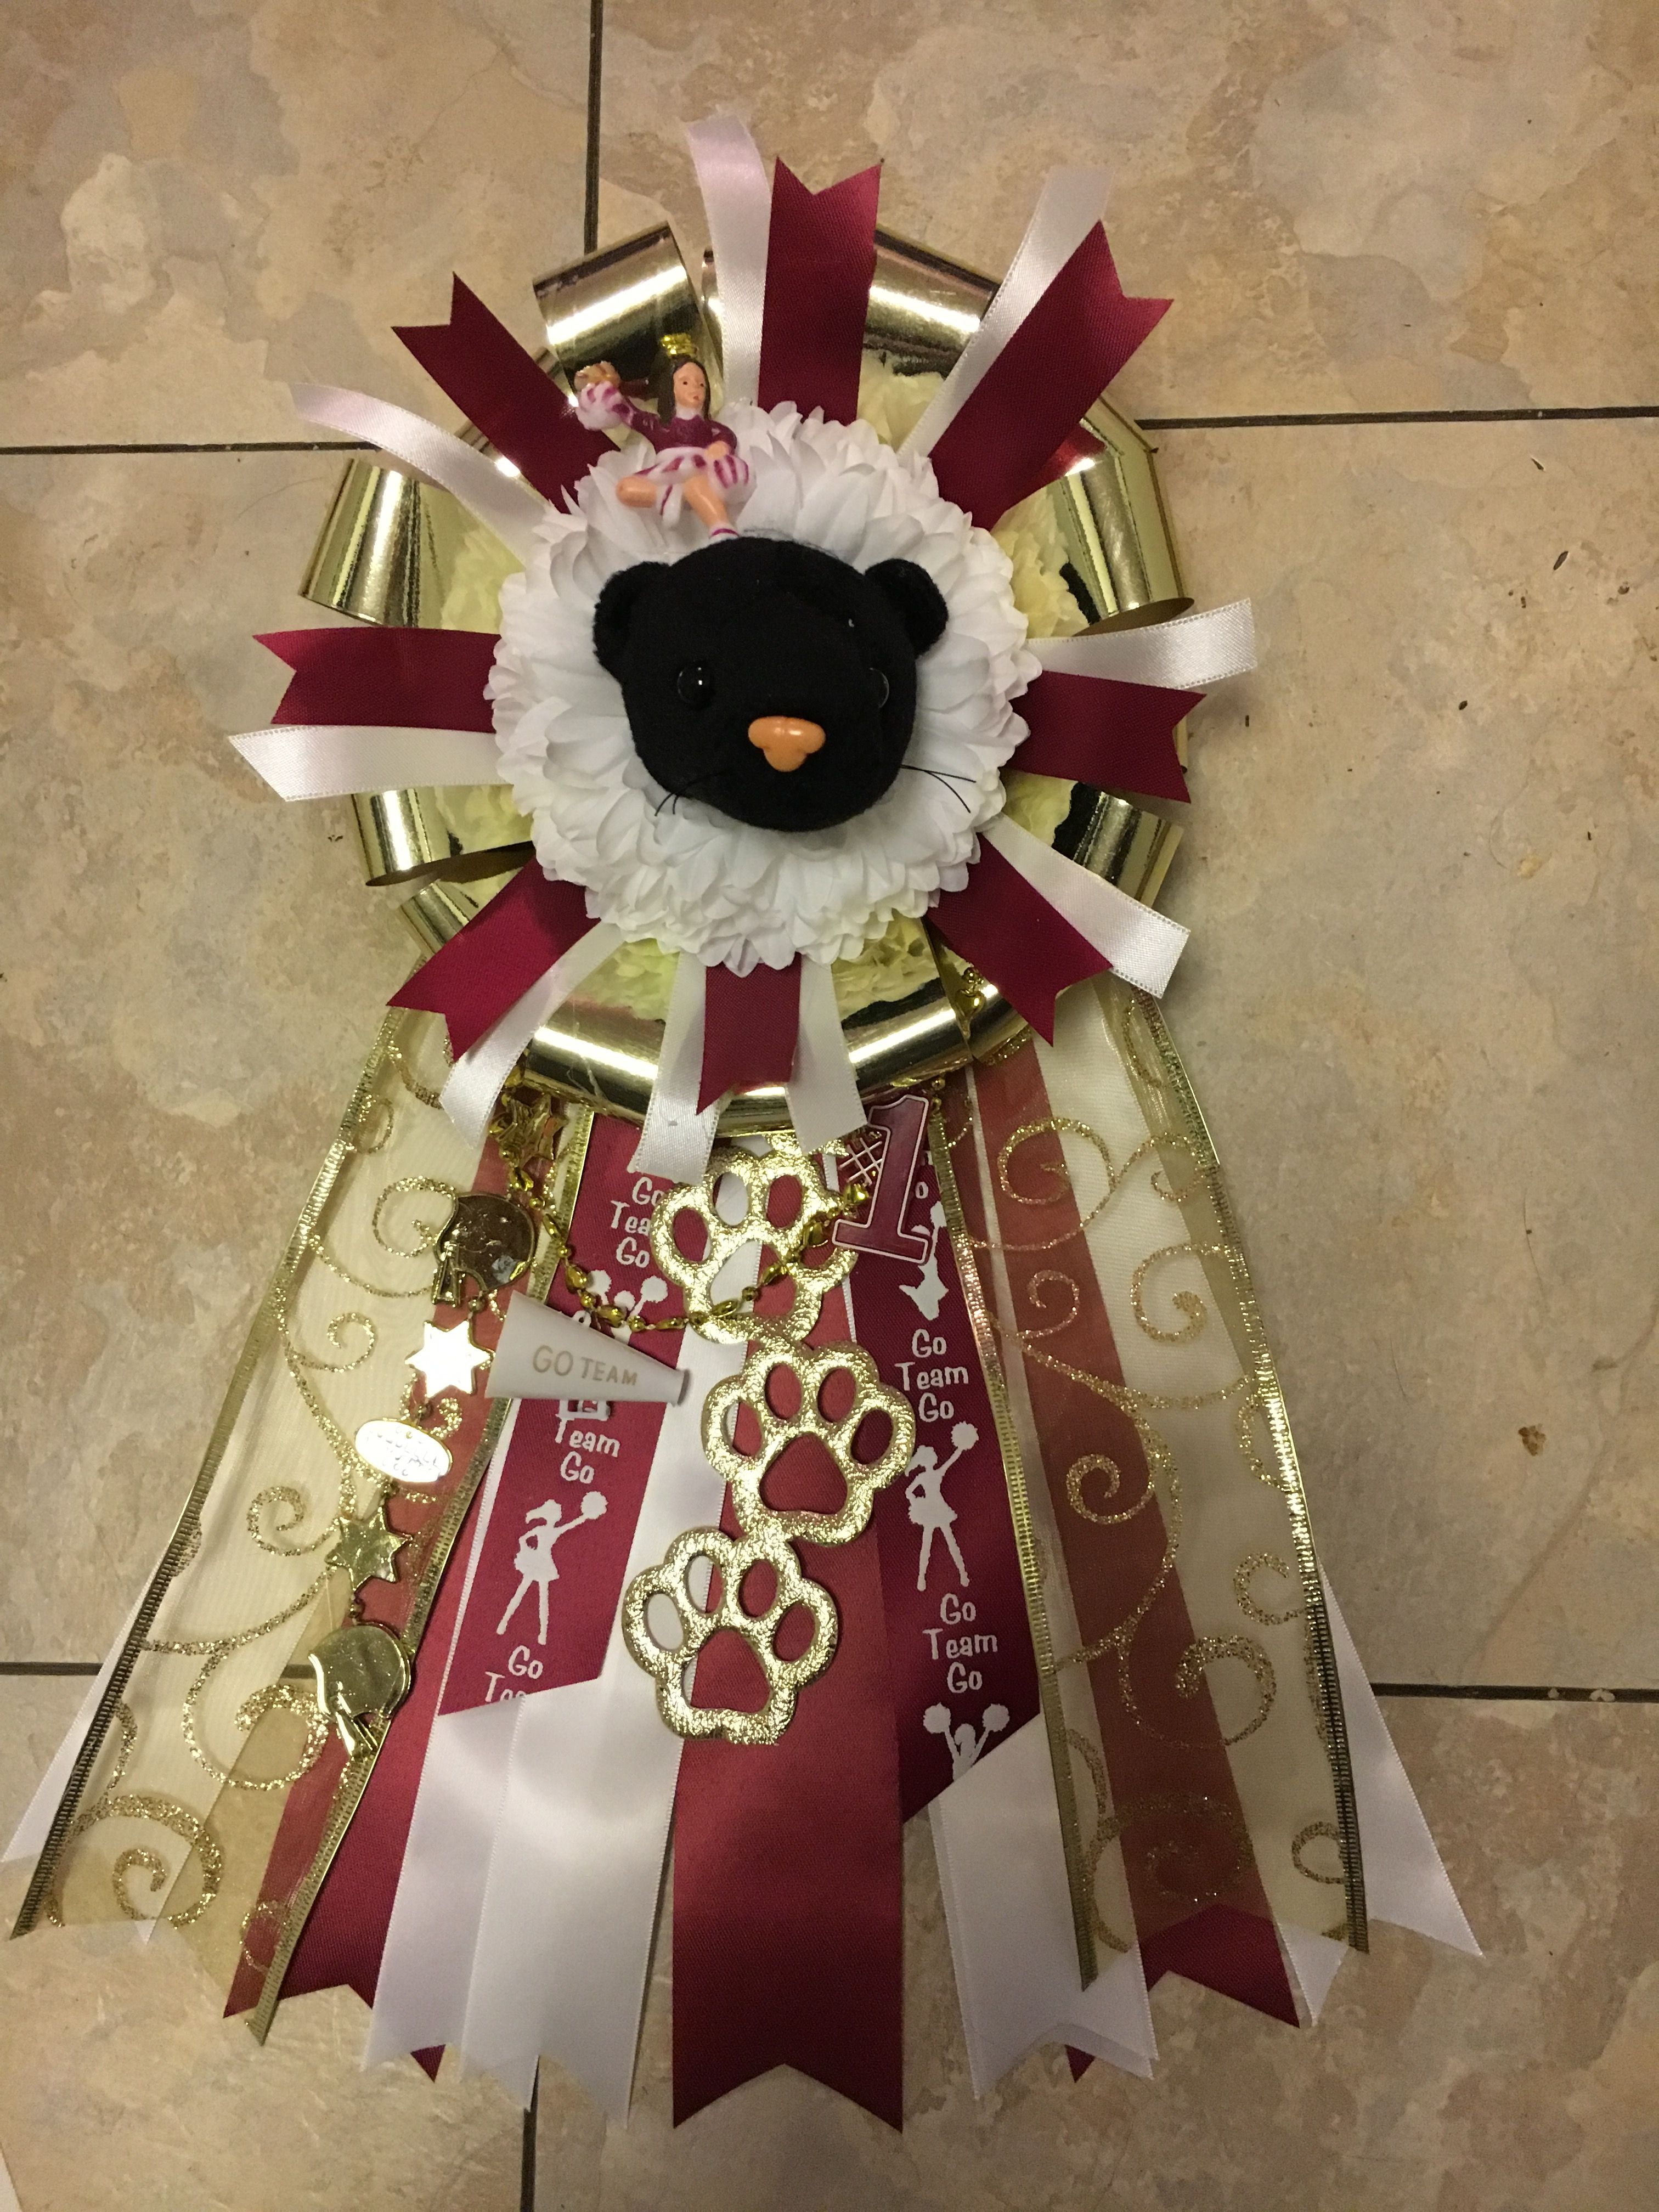 Pin by Misty McBride on MX3 Mums Christmas tree skirt